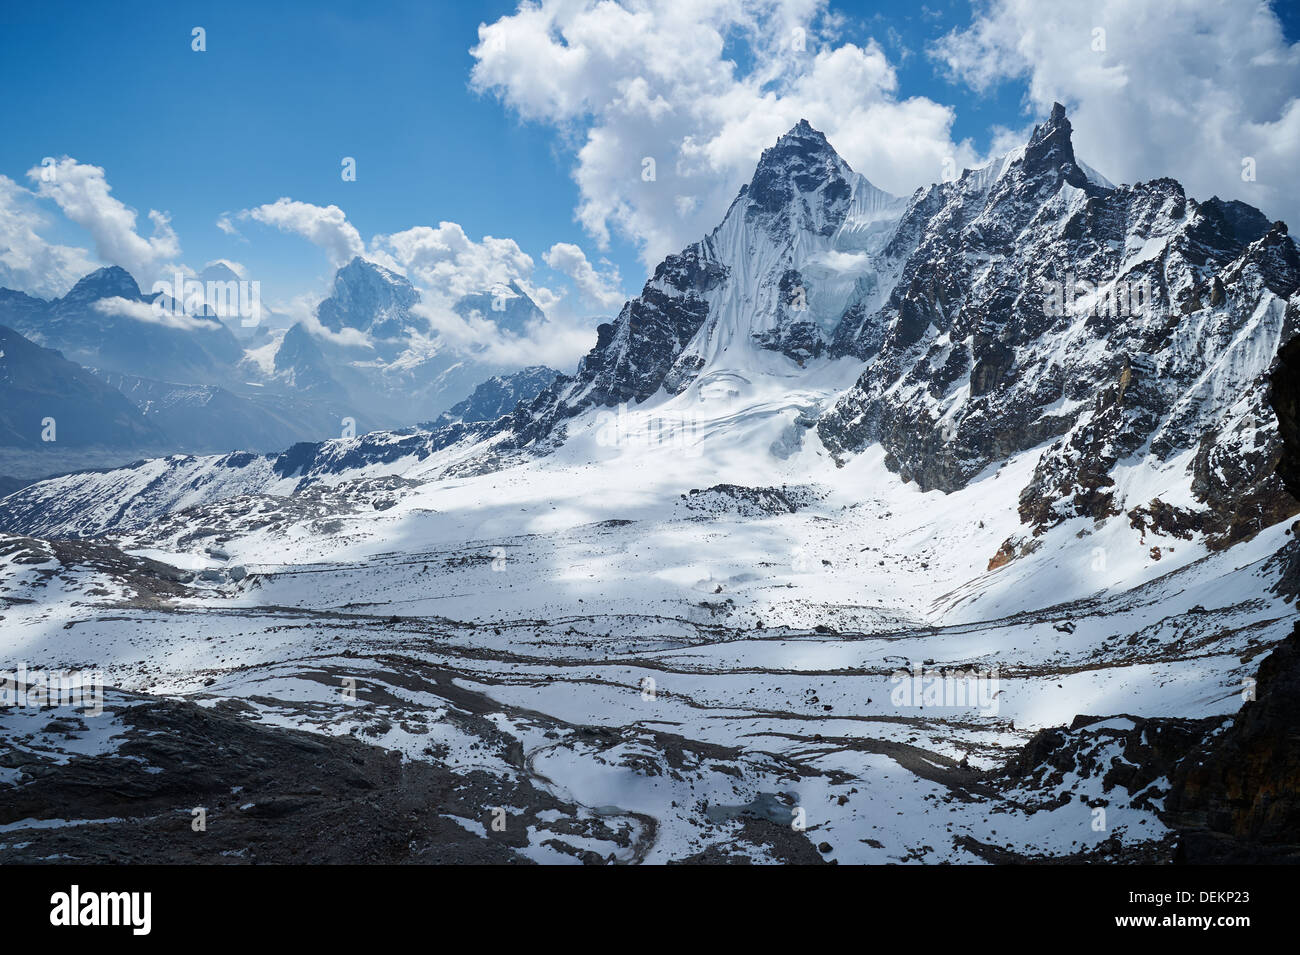 View from Renjo La pass, Nepalese Himalayas, Everest Region, looking towards Gokyo (out of frame to left) - Stock Image